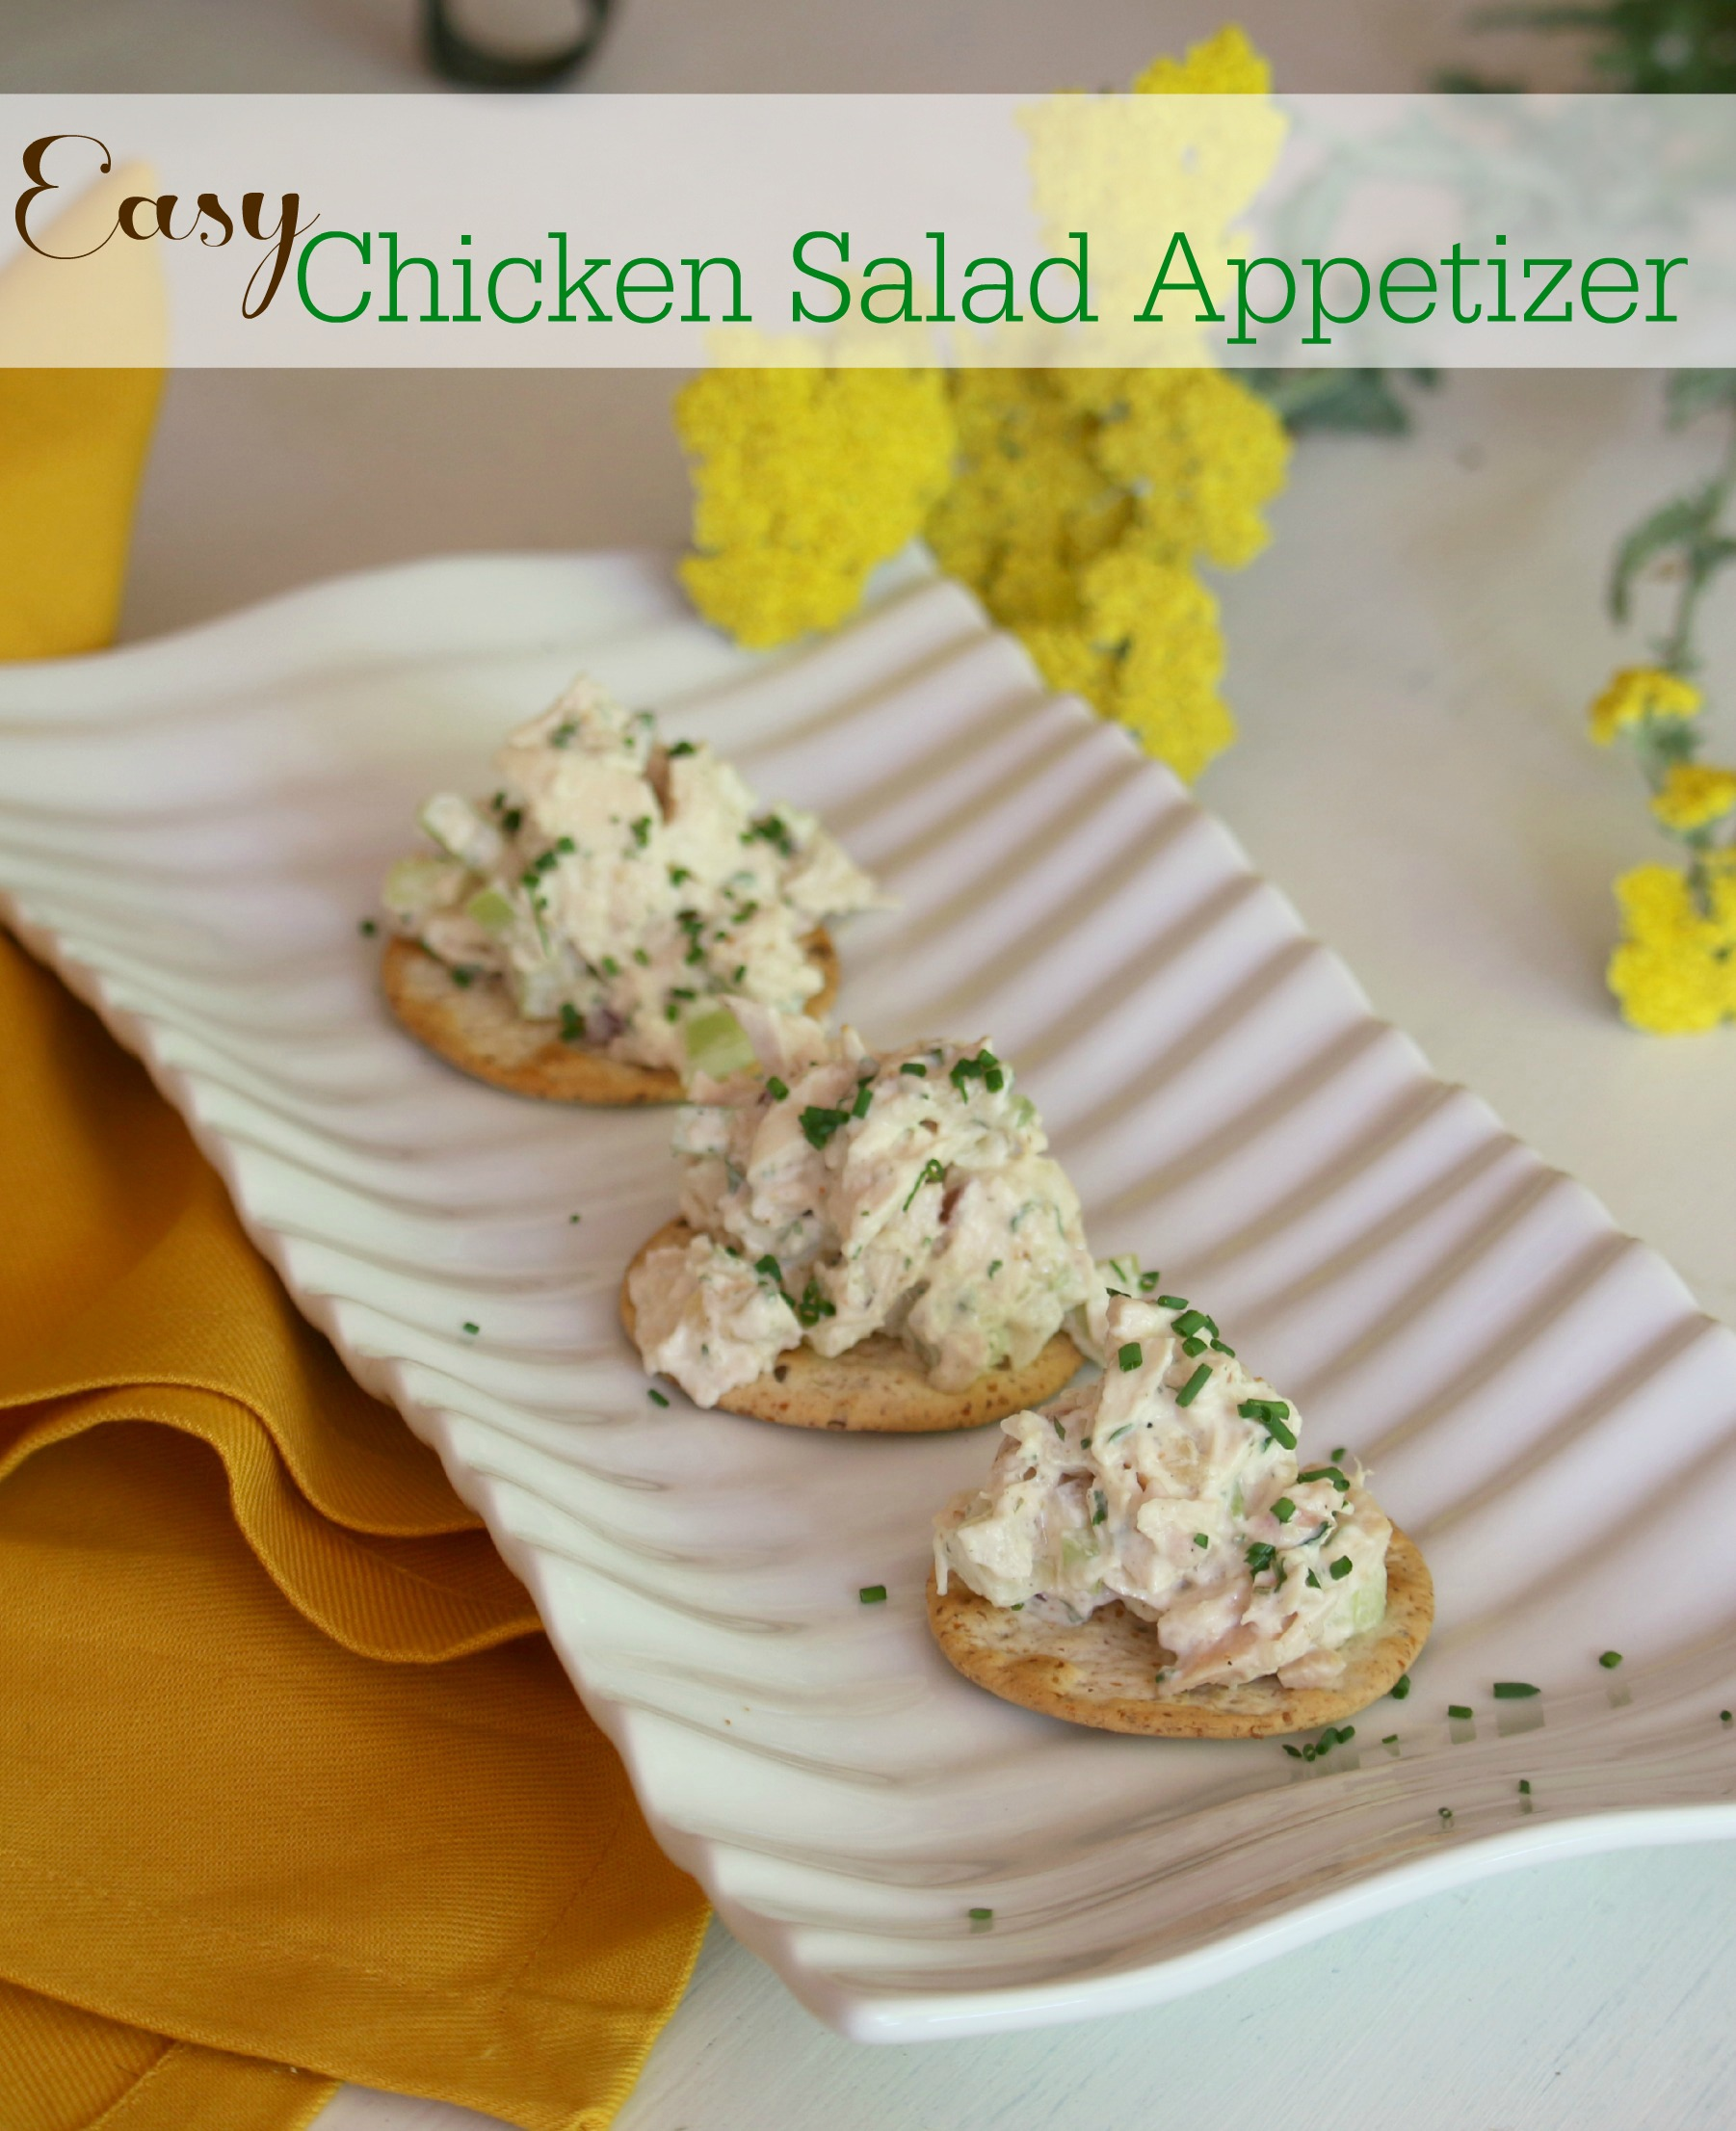 Easy Chicken Salad Appetizer - Great Party Food!